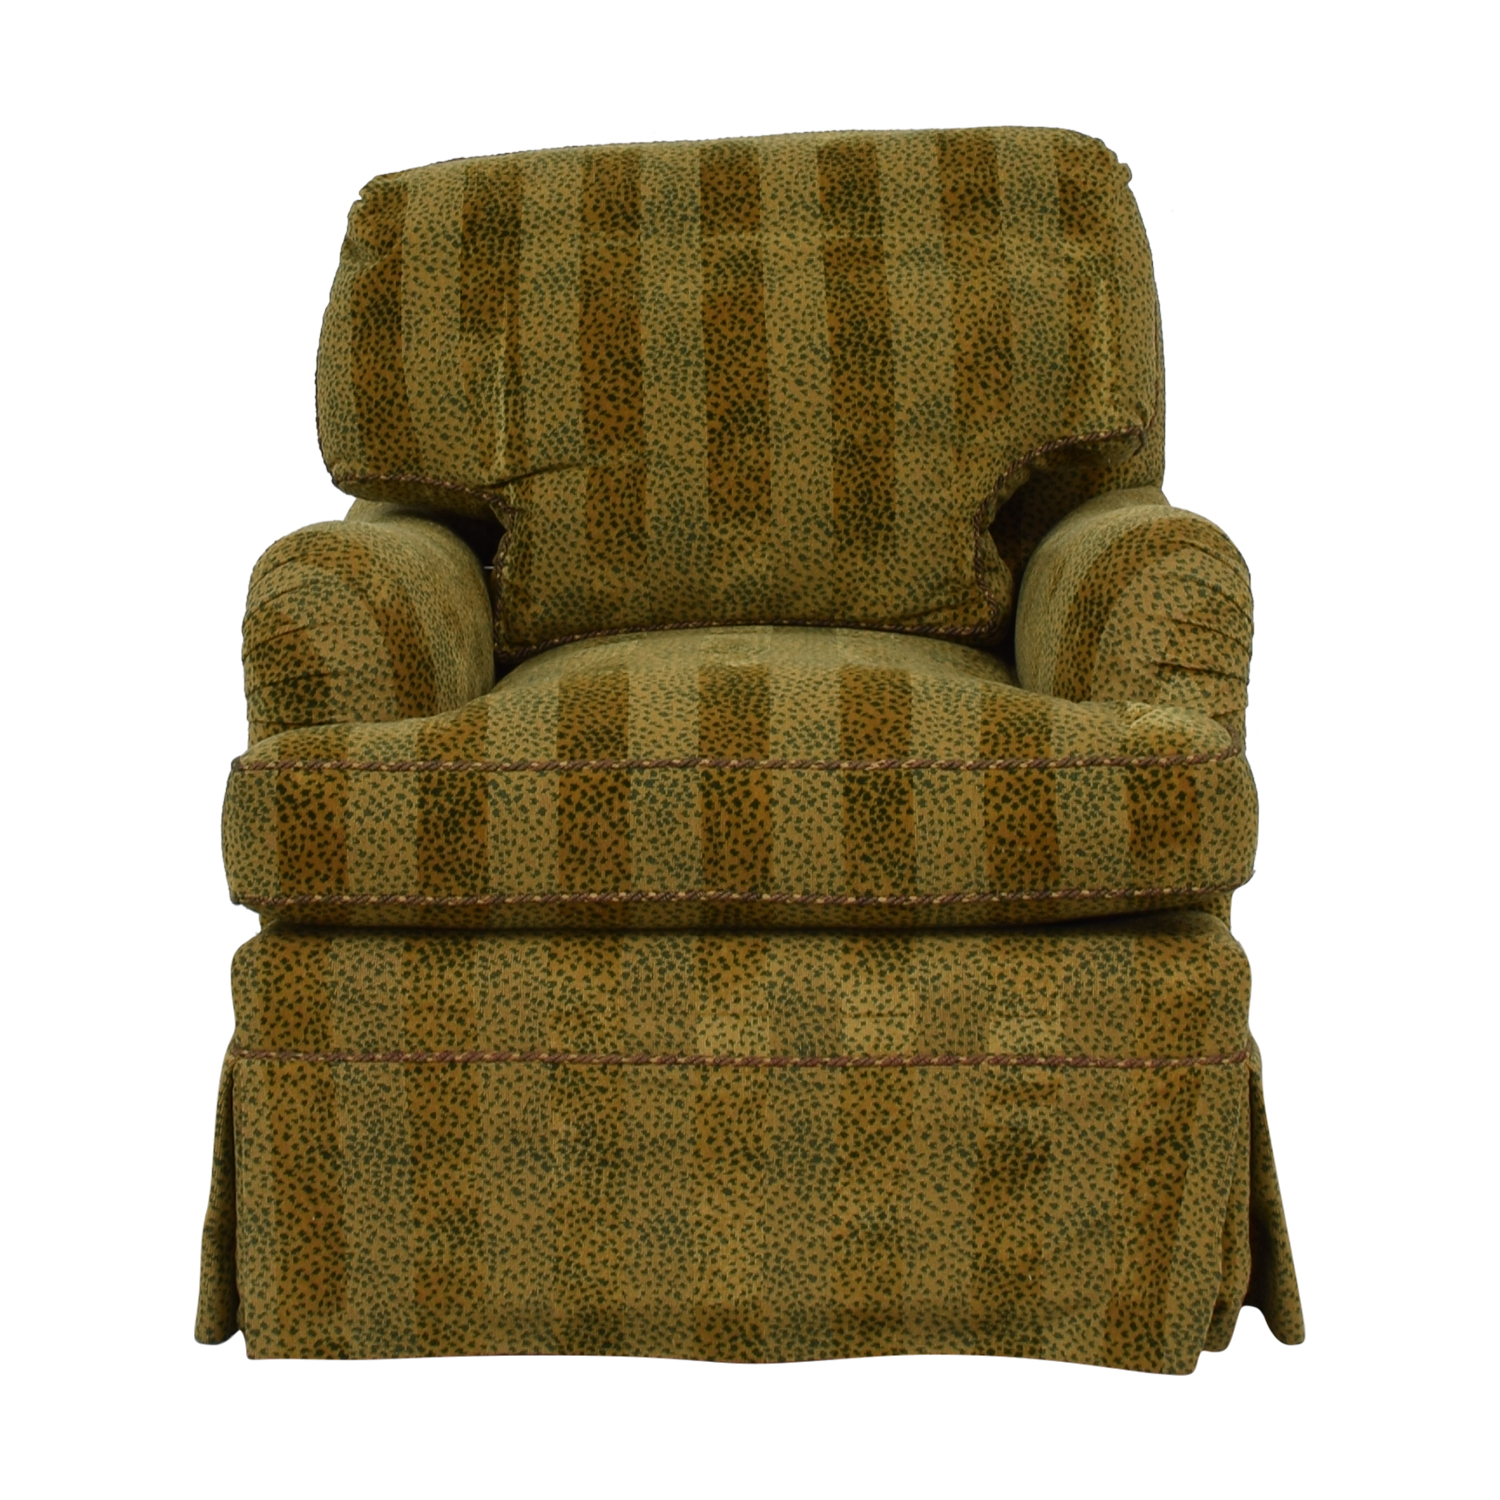 Furniture Masters Gold Cougar Striped Accent Chair sale